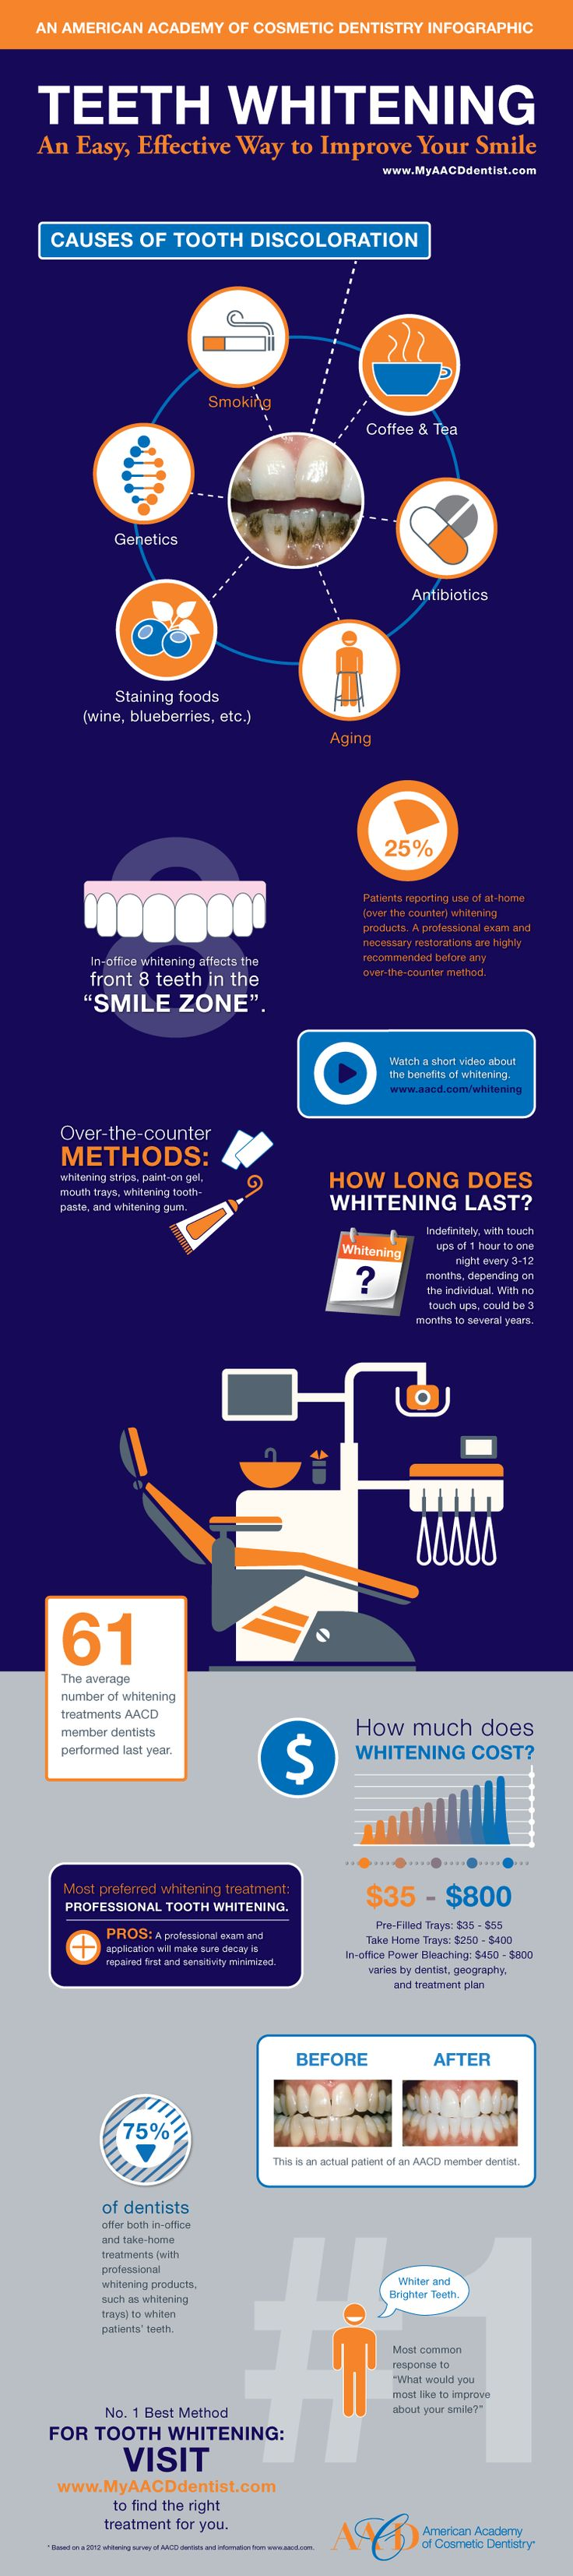 Teeth whitening in Boston and Newton , MA by Boston's Top Cosmetic Dentist, Dr. Anna Berik